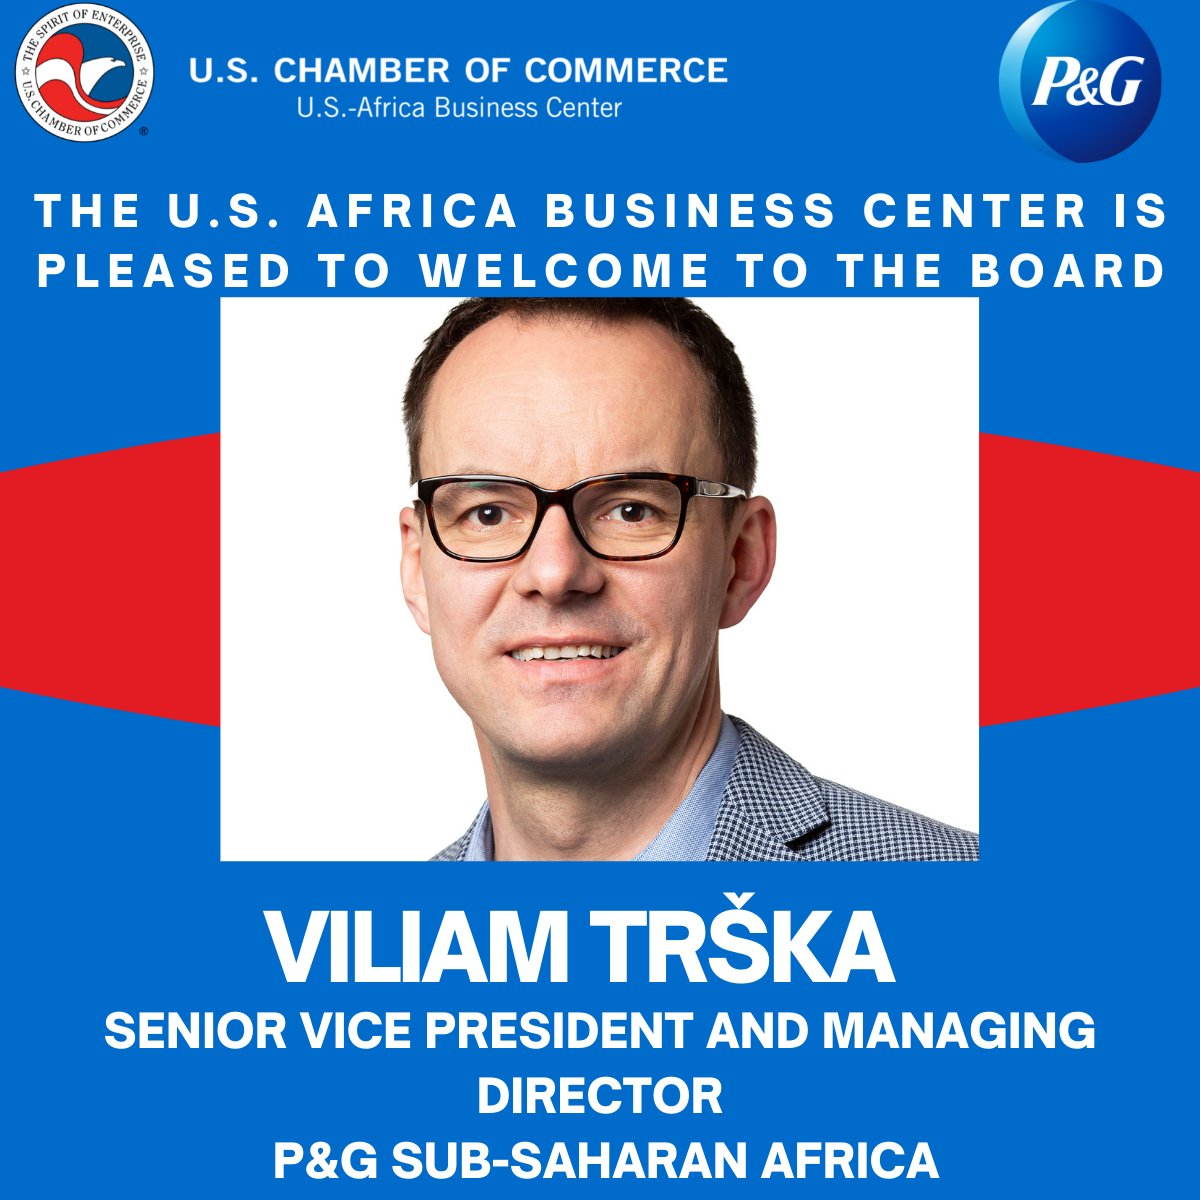 test Twitter Media - We are honored to welcome Vilo to the board of @USChamber's Africa Business Center. @ProcterGamble has made investing in Africa a key growth strategy- empowering the people they employ, their partners and the African communities they serve. https://t.co/7GBQjOLSIq